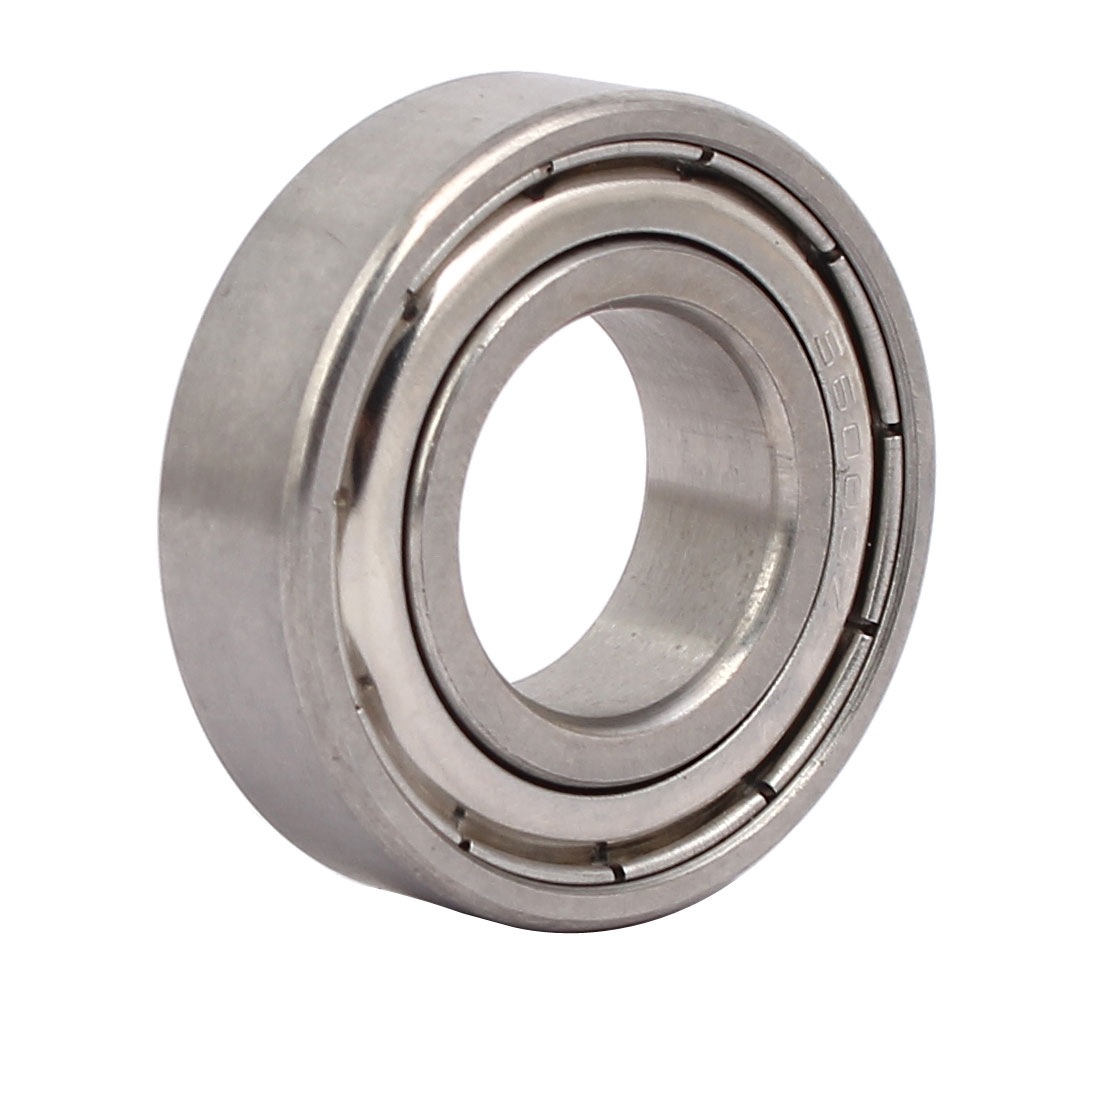 6003Z 35mmx17mmx10mm Stainless Steel Shielded Deep Groove Radial Ball Bearing